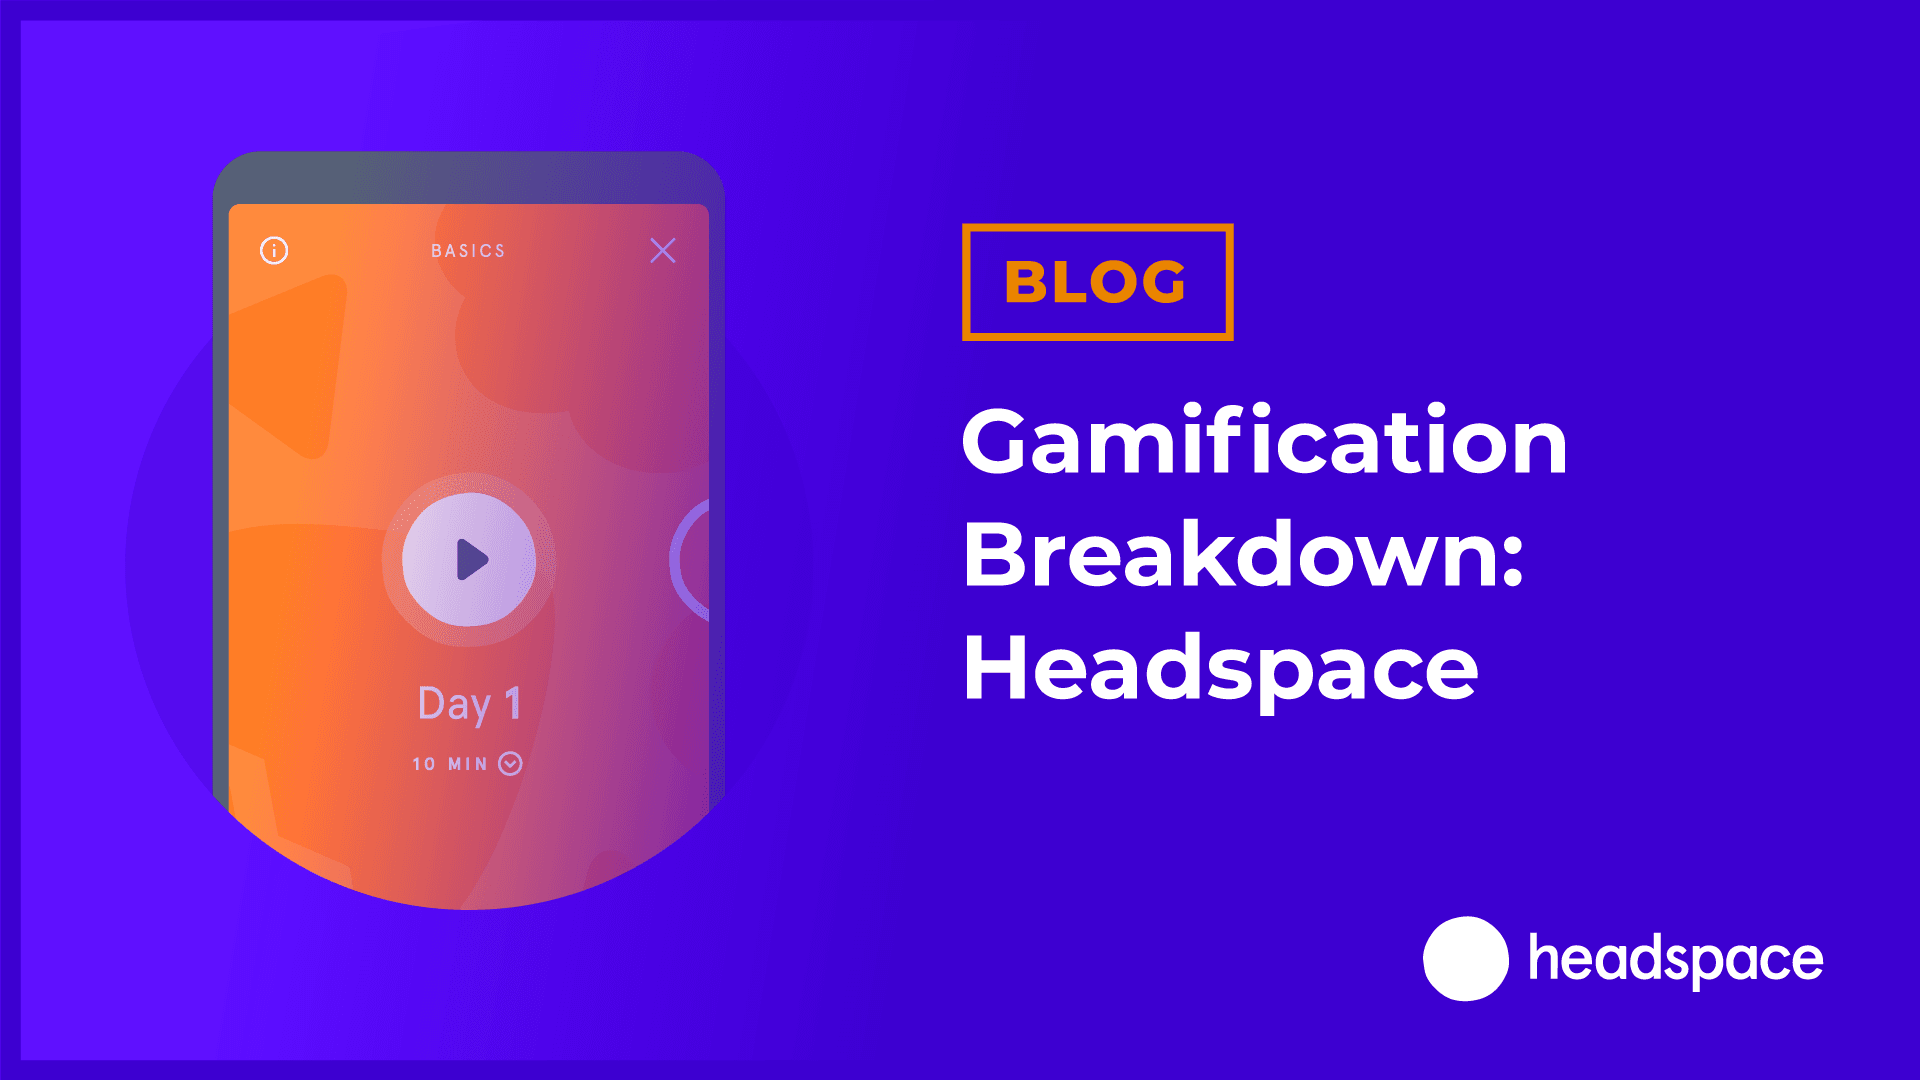 4 gamification features that make Headspace worth it (according to 2 million users)